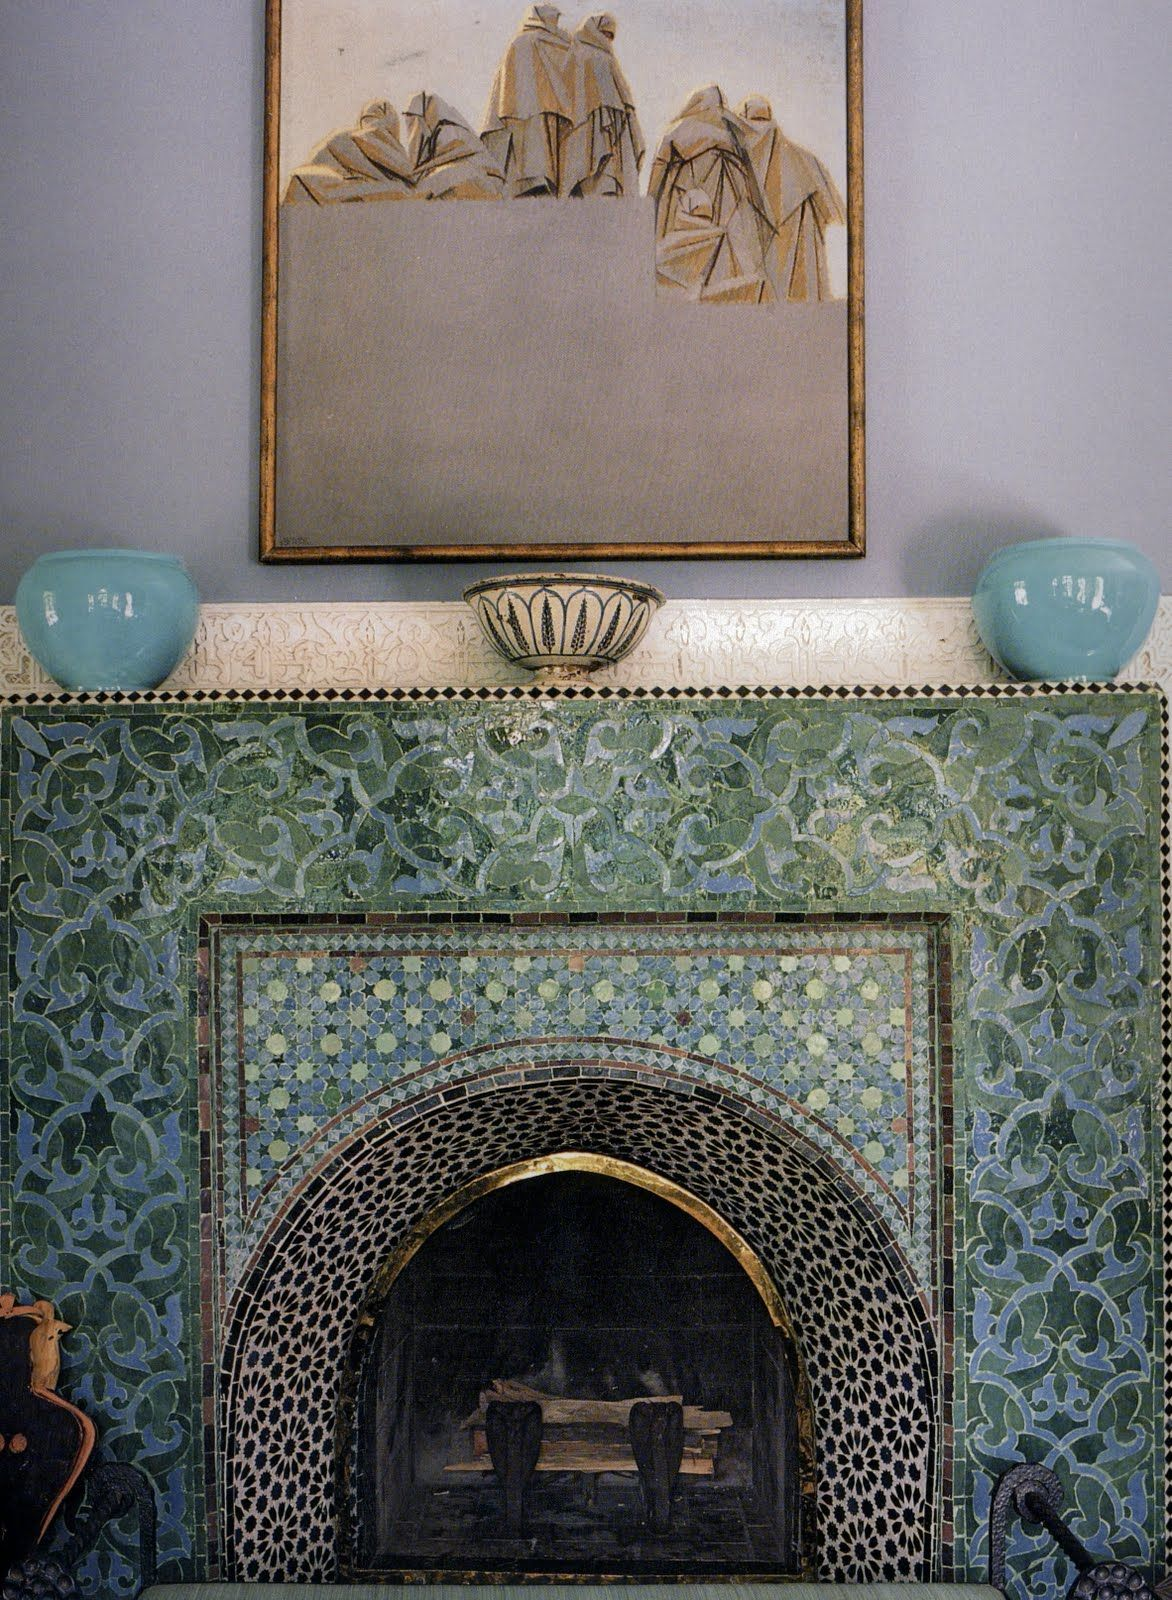 tiled fireplace surround and mantle fireplaces. Black Bedroom Furniture Sets. Home Design Ideas